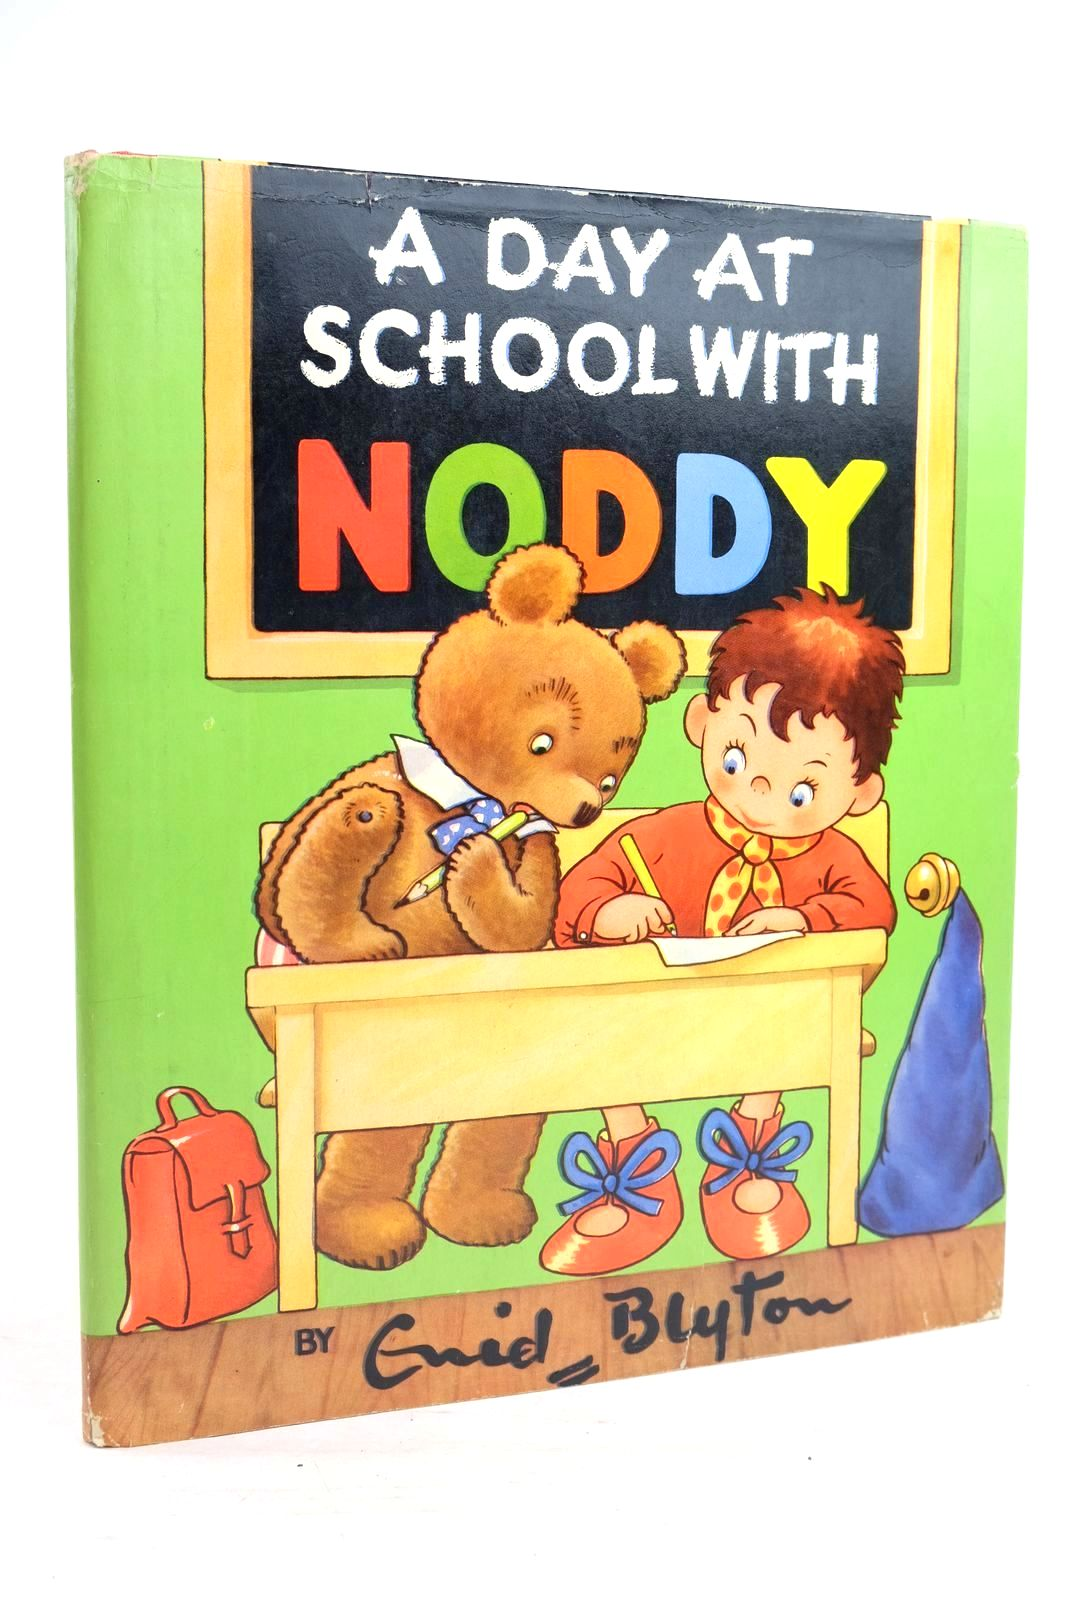 A Day At School With Noddy